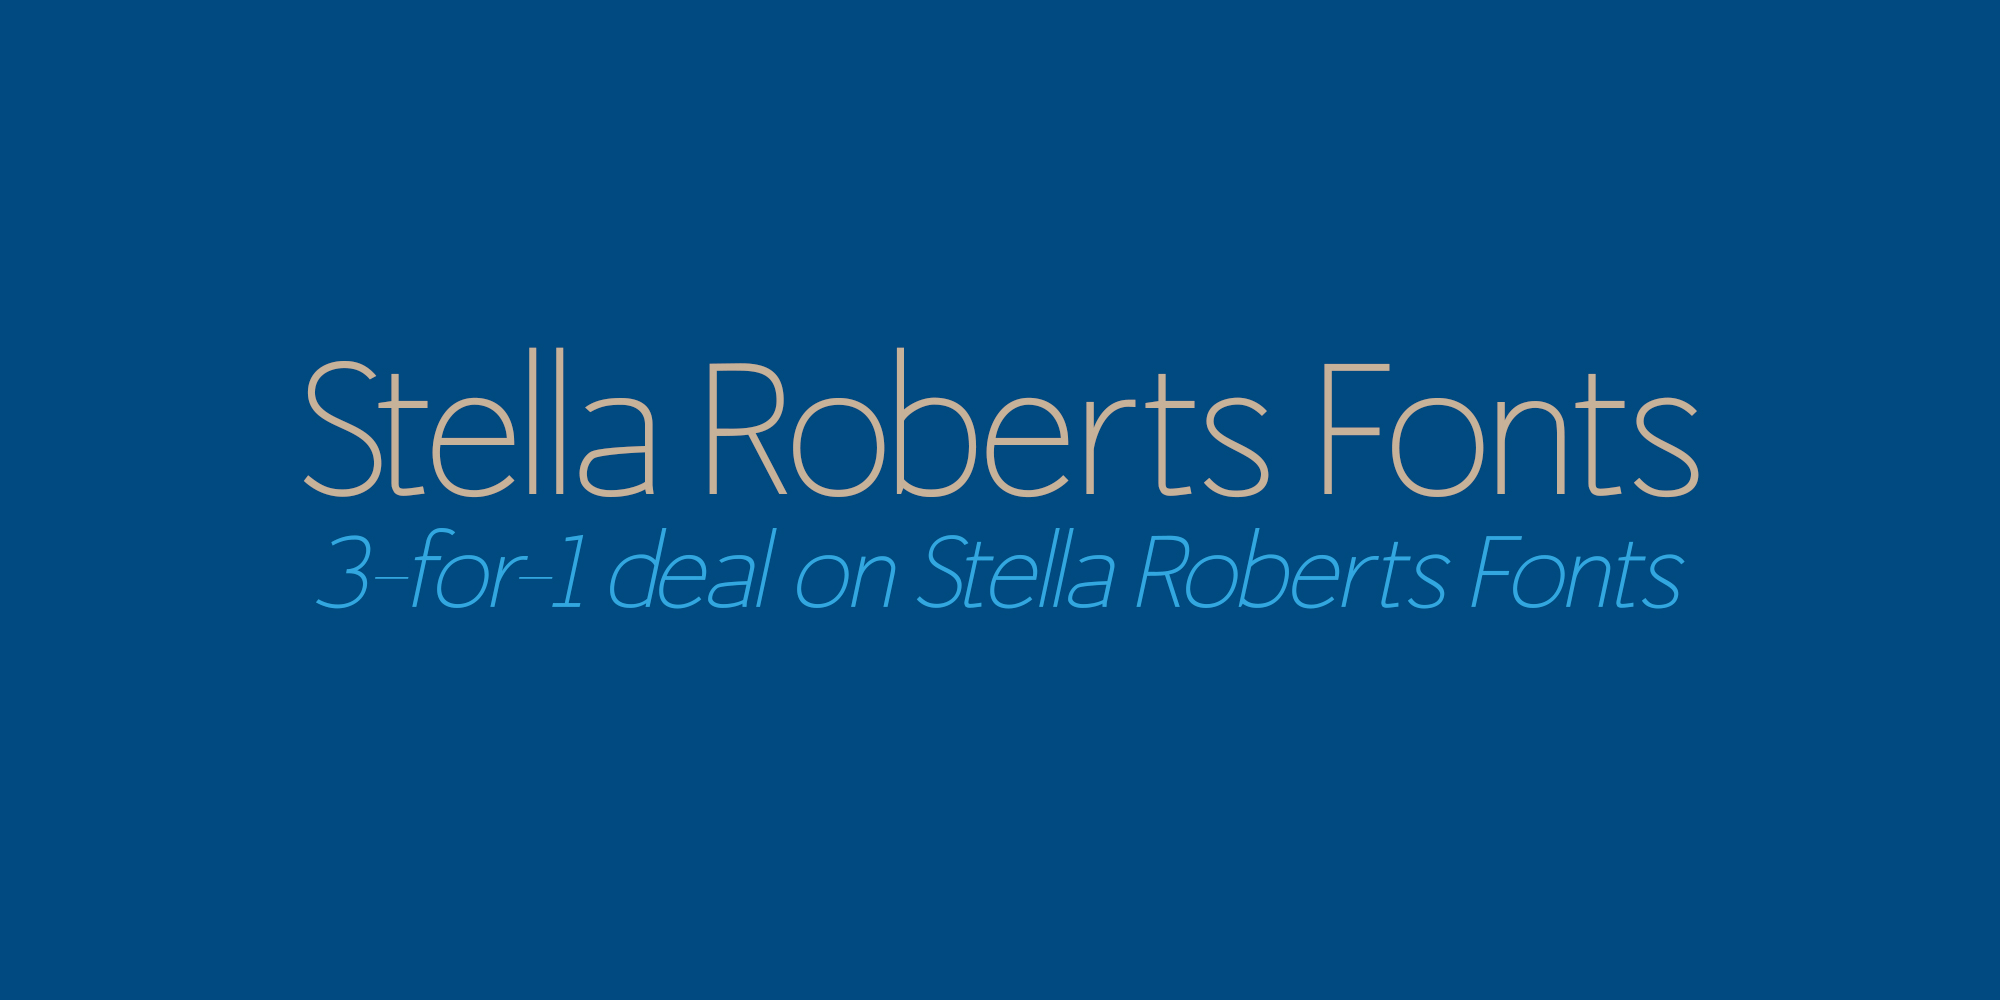 An Incredible 3-for-1 deal for Stella Roberts' Fonts